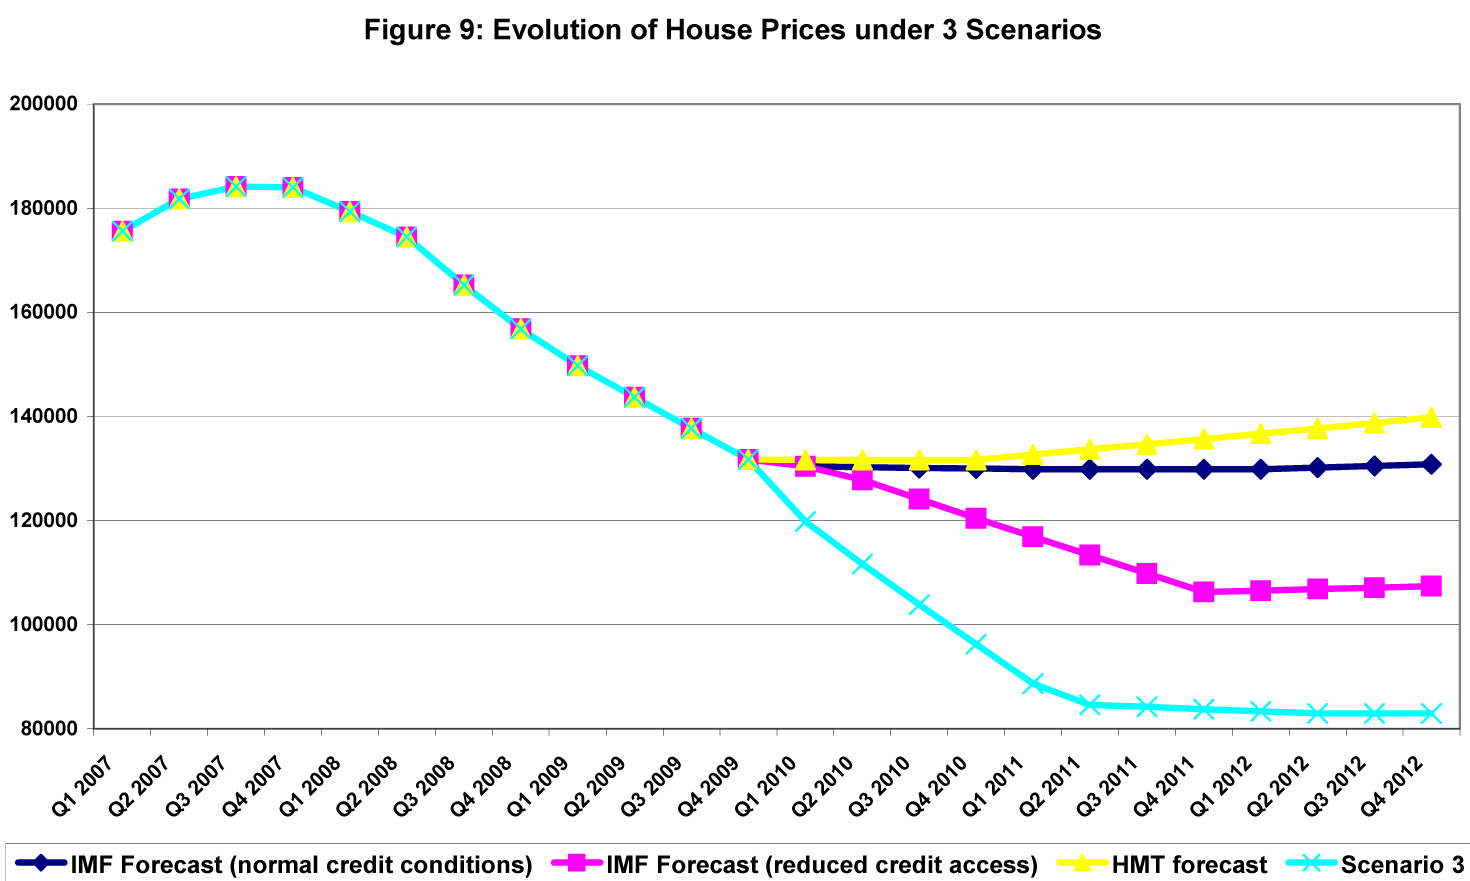 uk house price crash - quiet before the fall (2007)